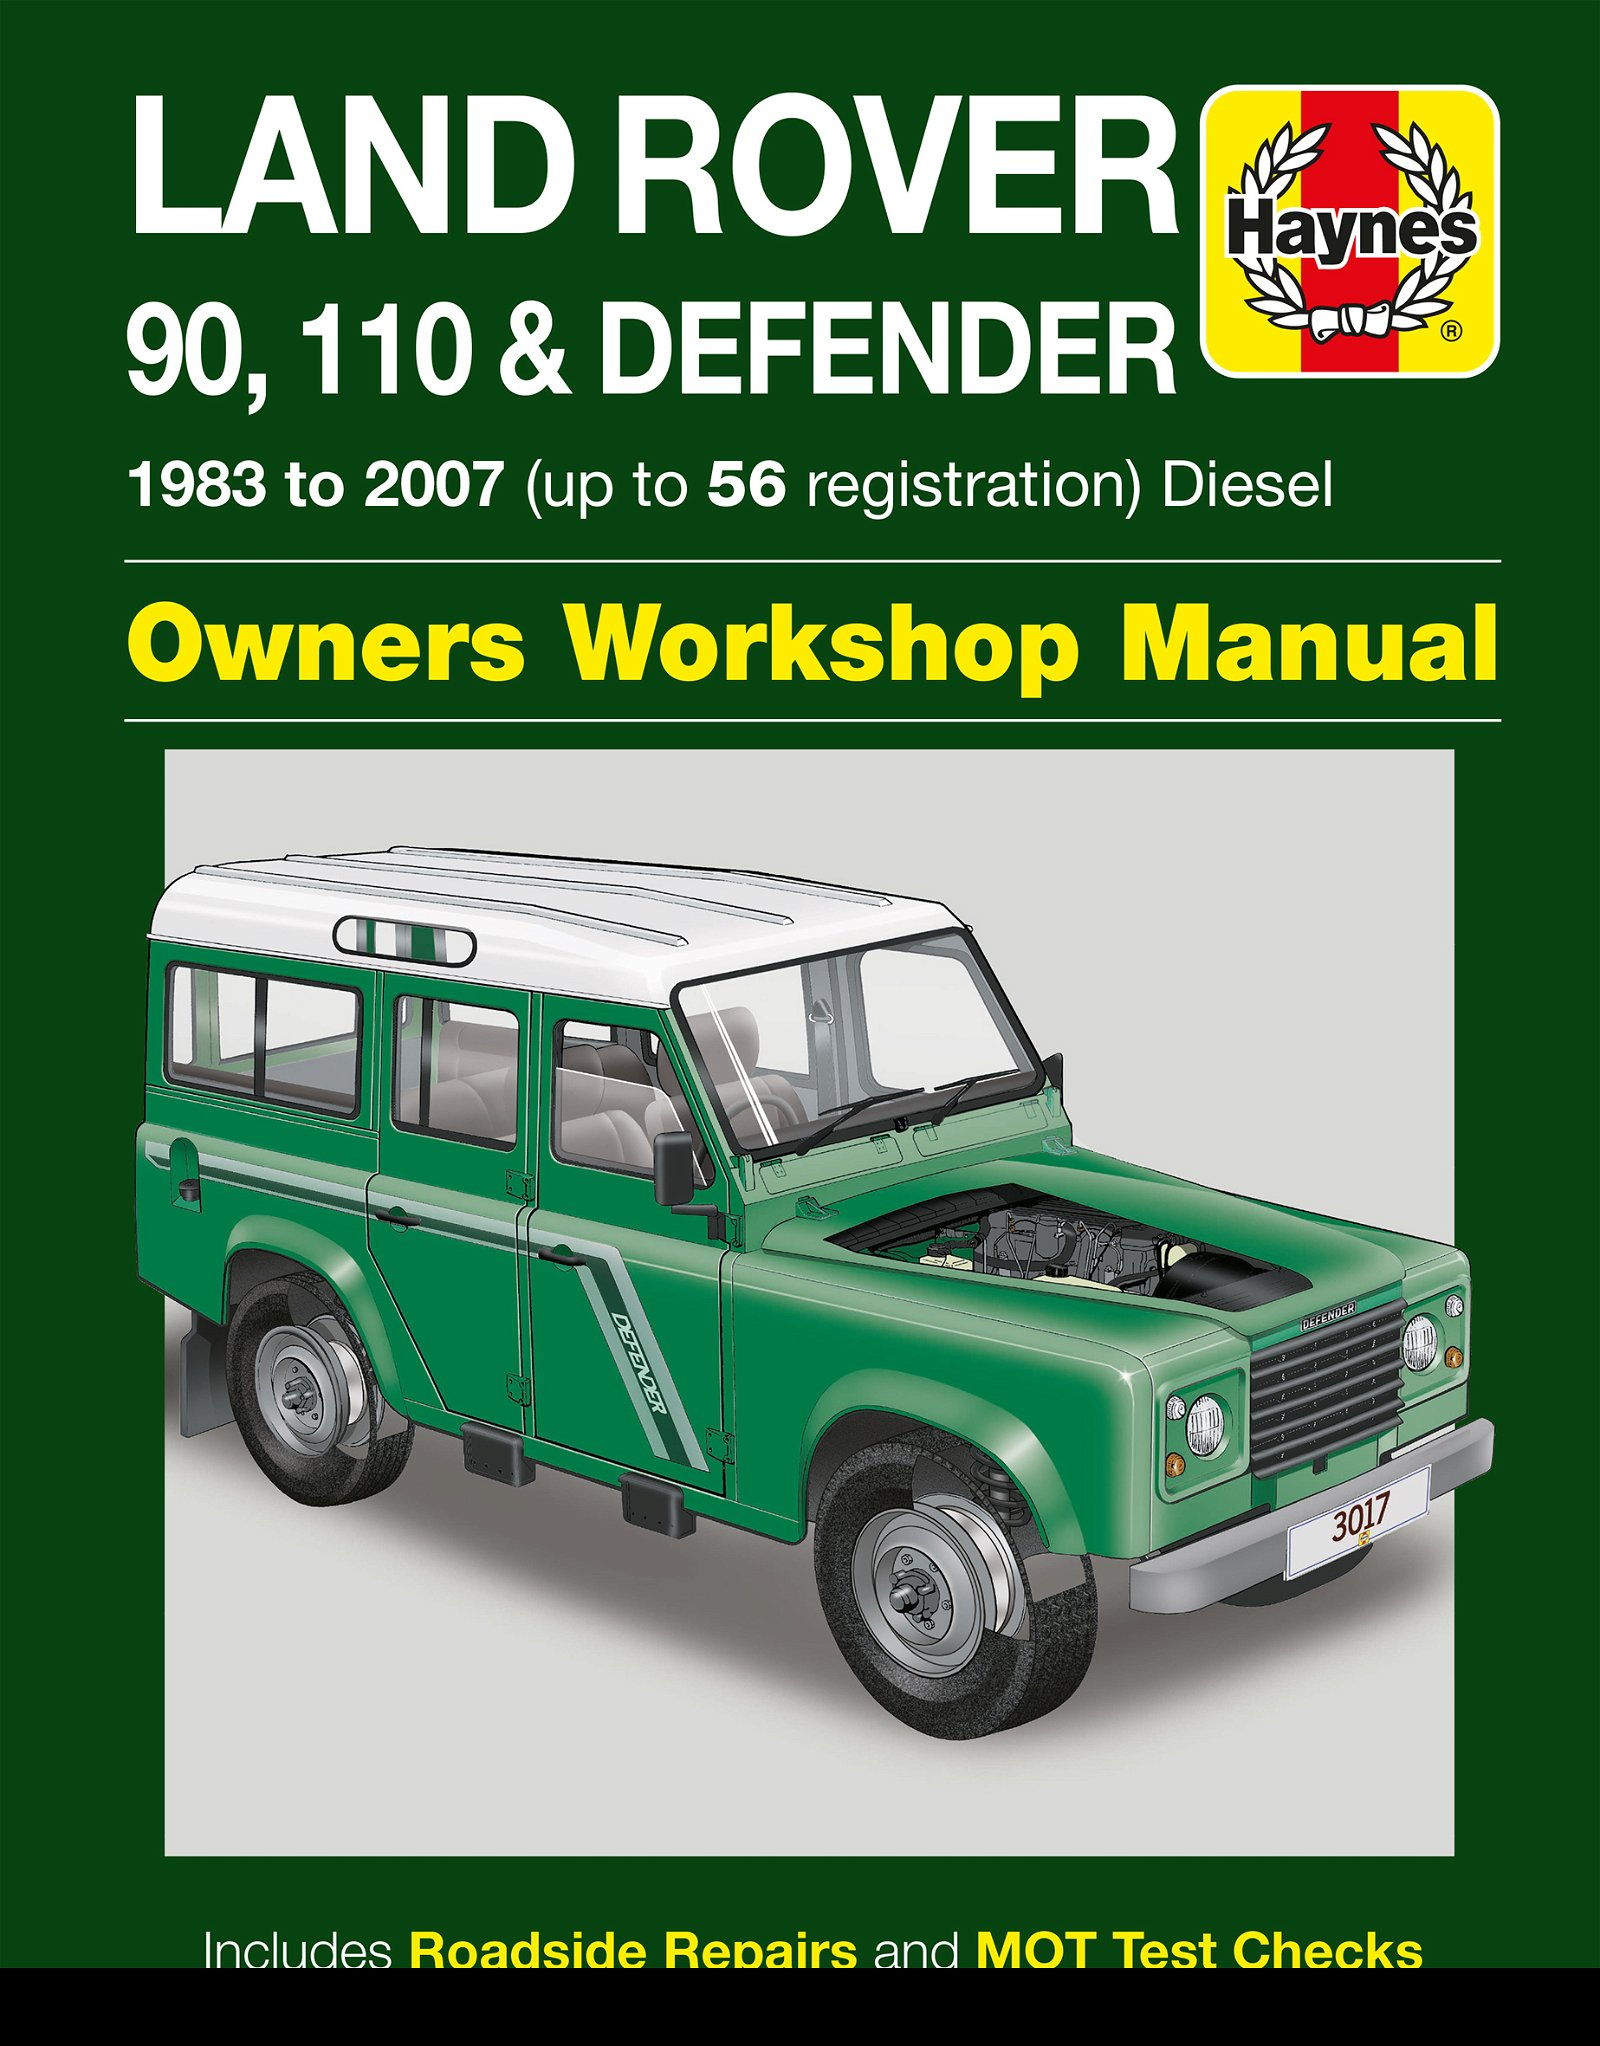 [Manuel UK en Anglais] Land Rover 90, 110 & Defender Diesel  (83 - 07)  up to 56